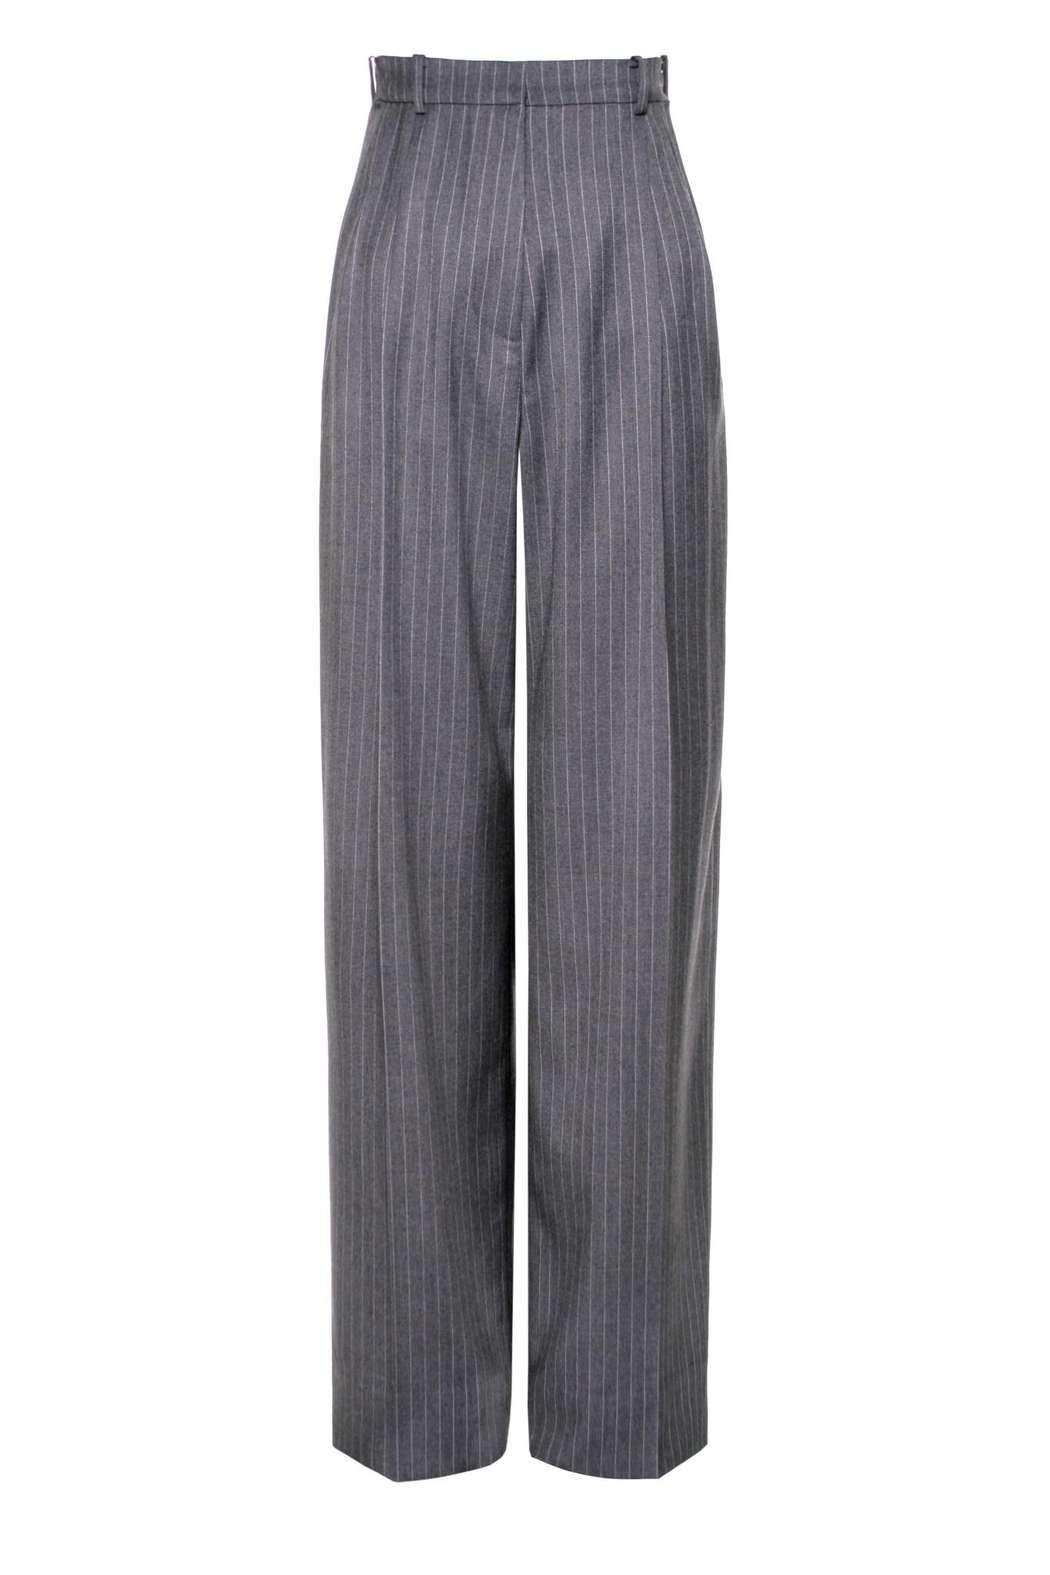 AGGI Trousers Gwen Downtown Grey - Front Full Image